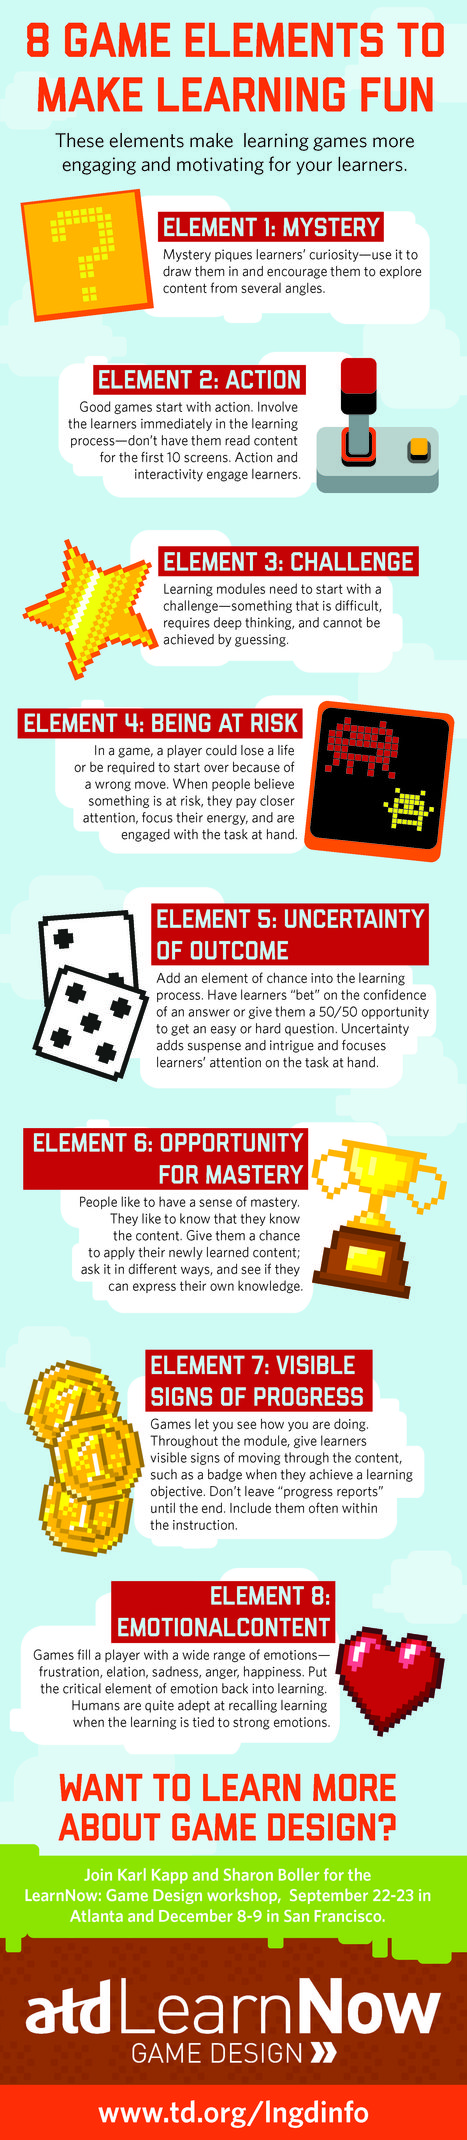 8 Game Elements to Make Learning Fun | Games and education | Scoop.it